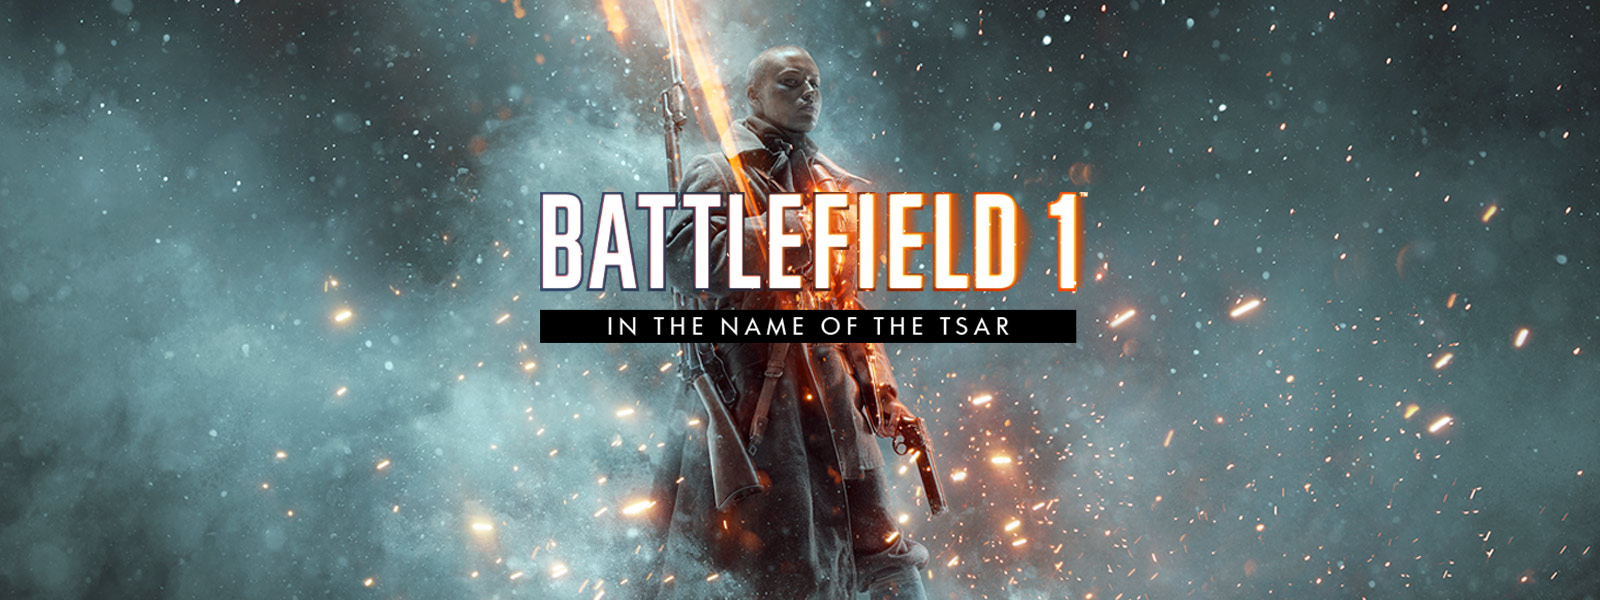 Battlefield 1 DLC - In the Name of the Tsar